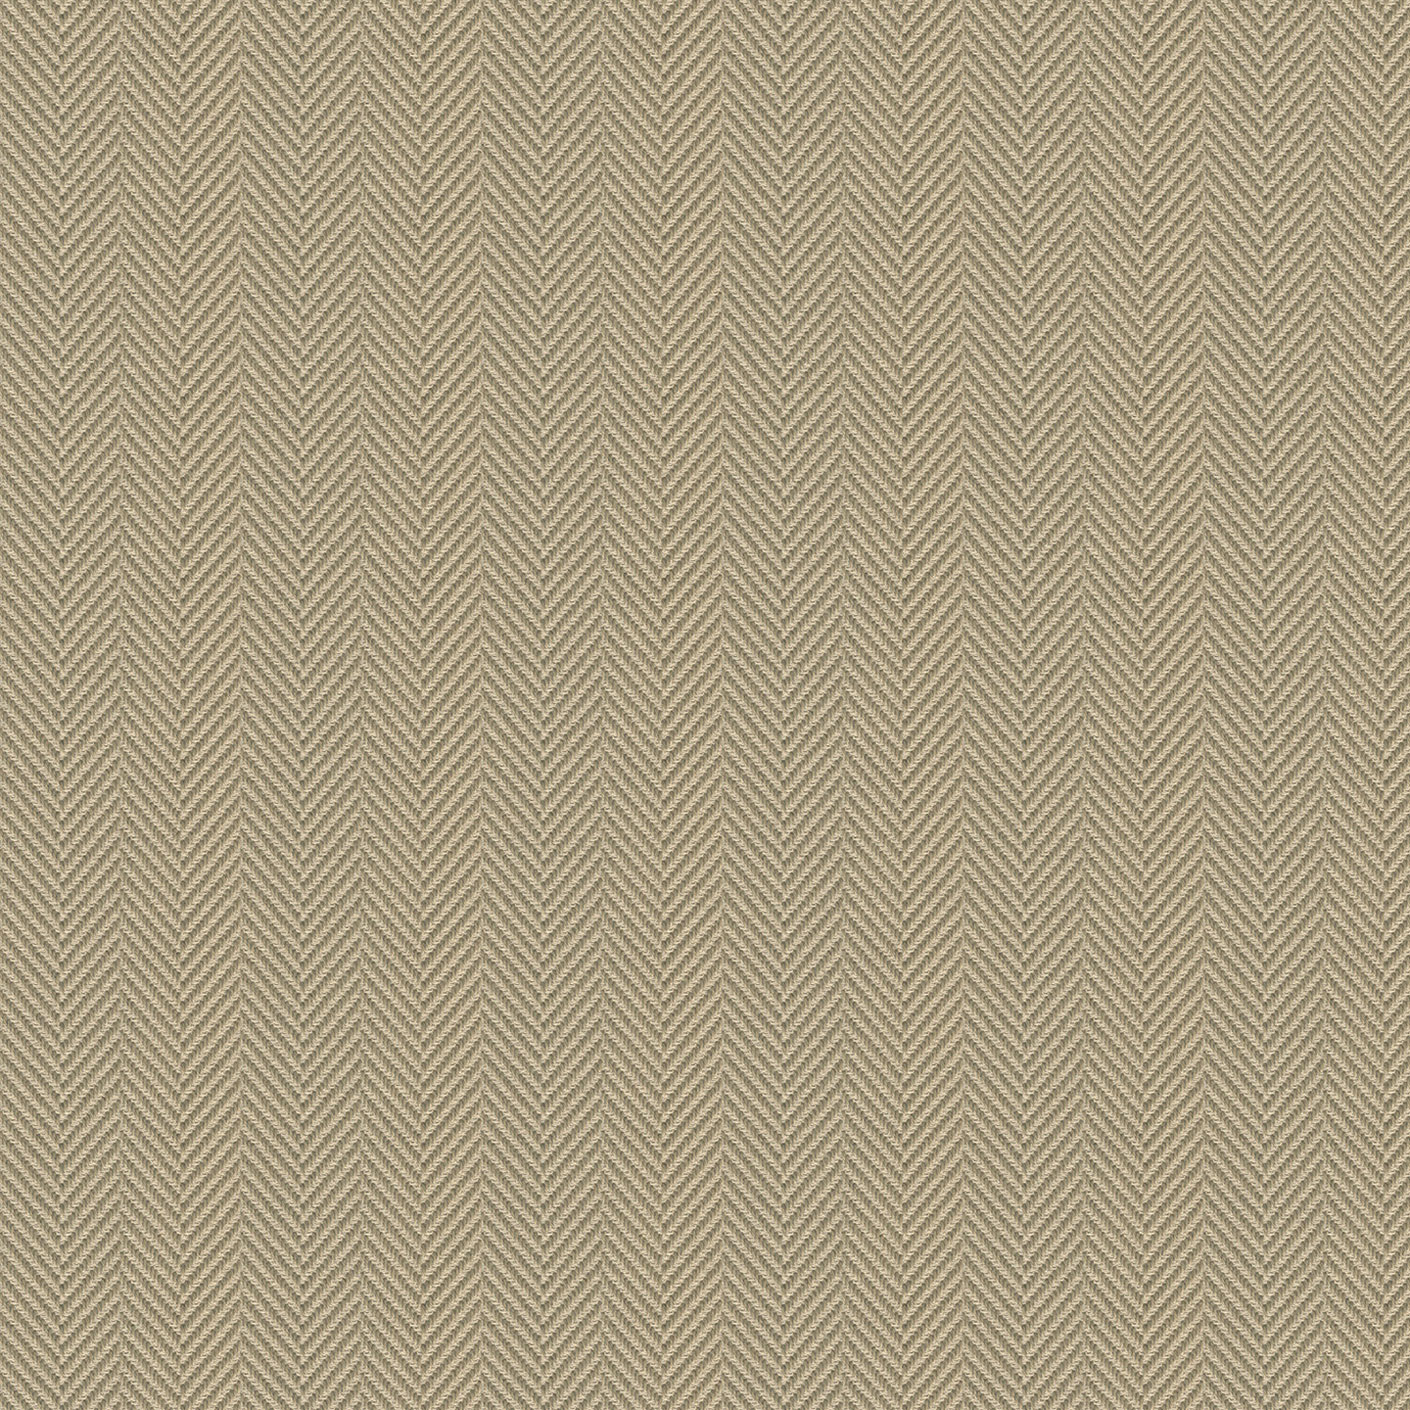 Emmett Linen Fabric by the Yard ,  , large